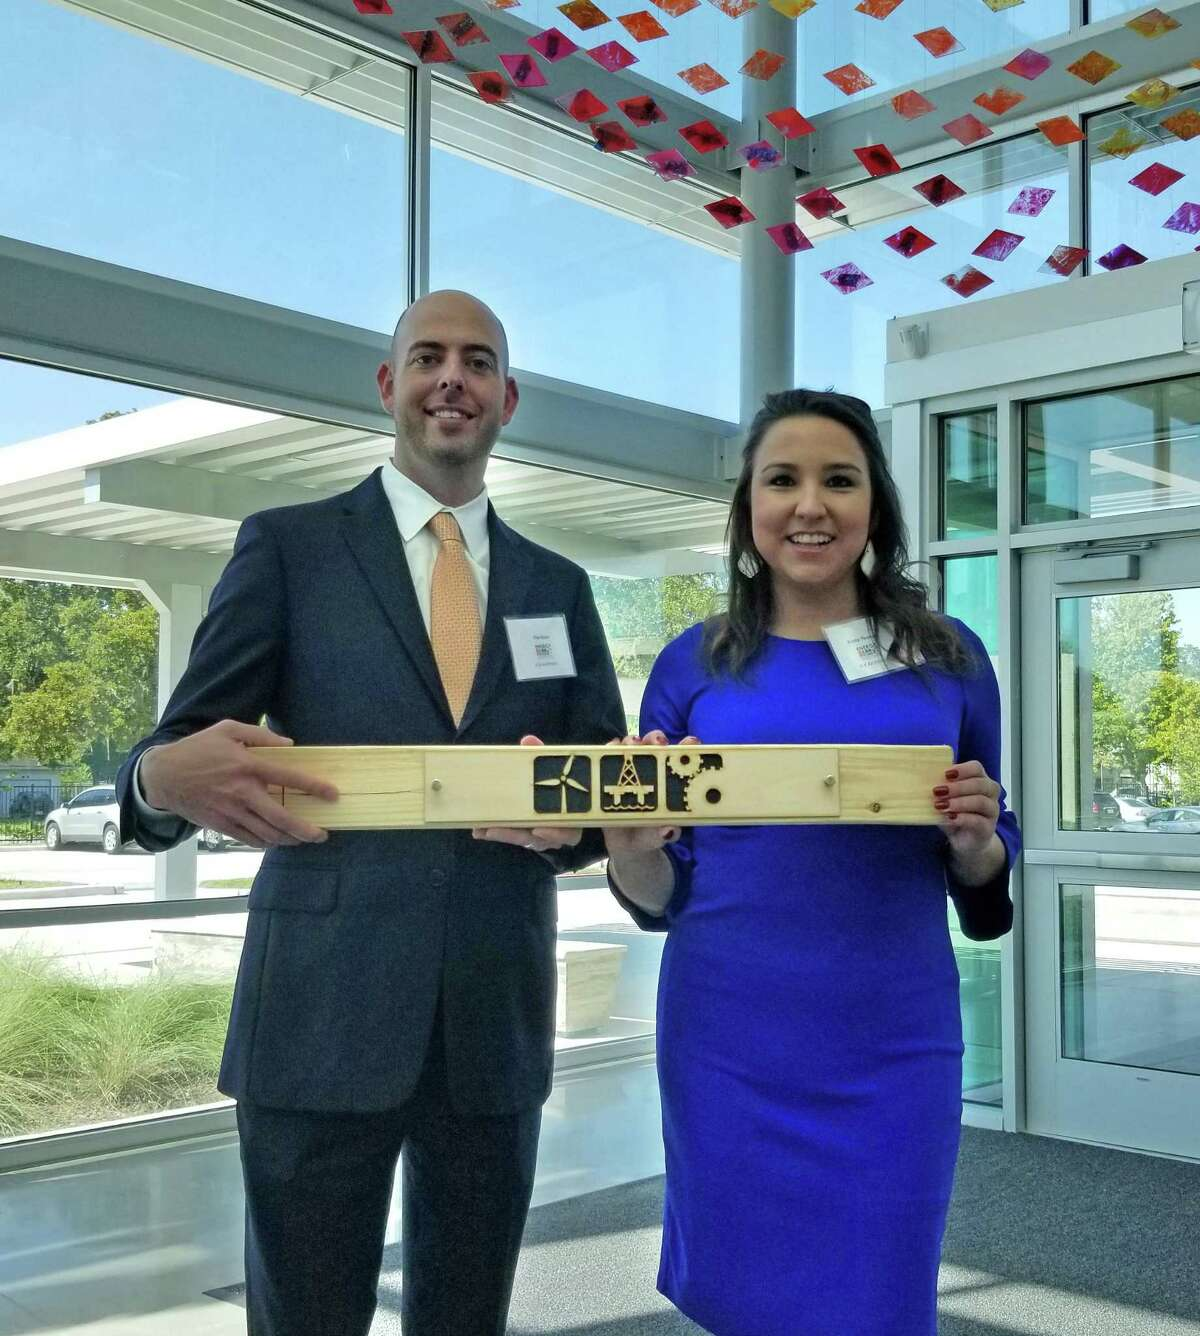 Tim Kunz and Krista Thomas of VLK Architects were among those in attendance at the Sept. 19, 2018, dedication ceremony the new Houston ISD Energy Institute High School.